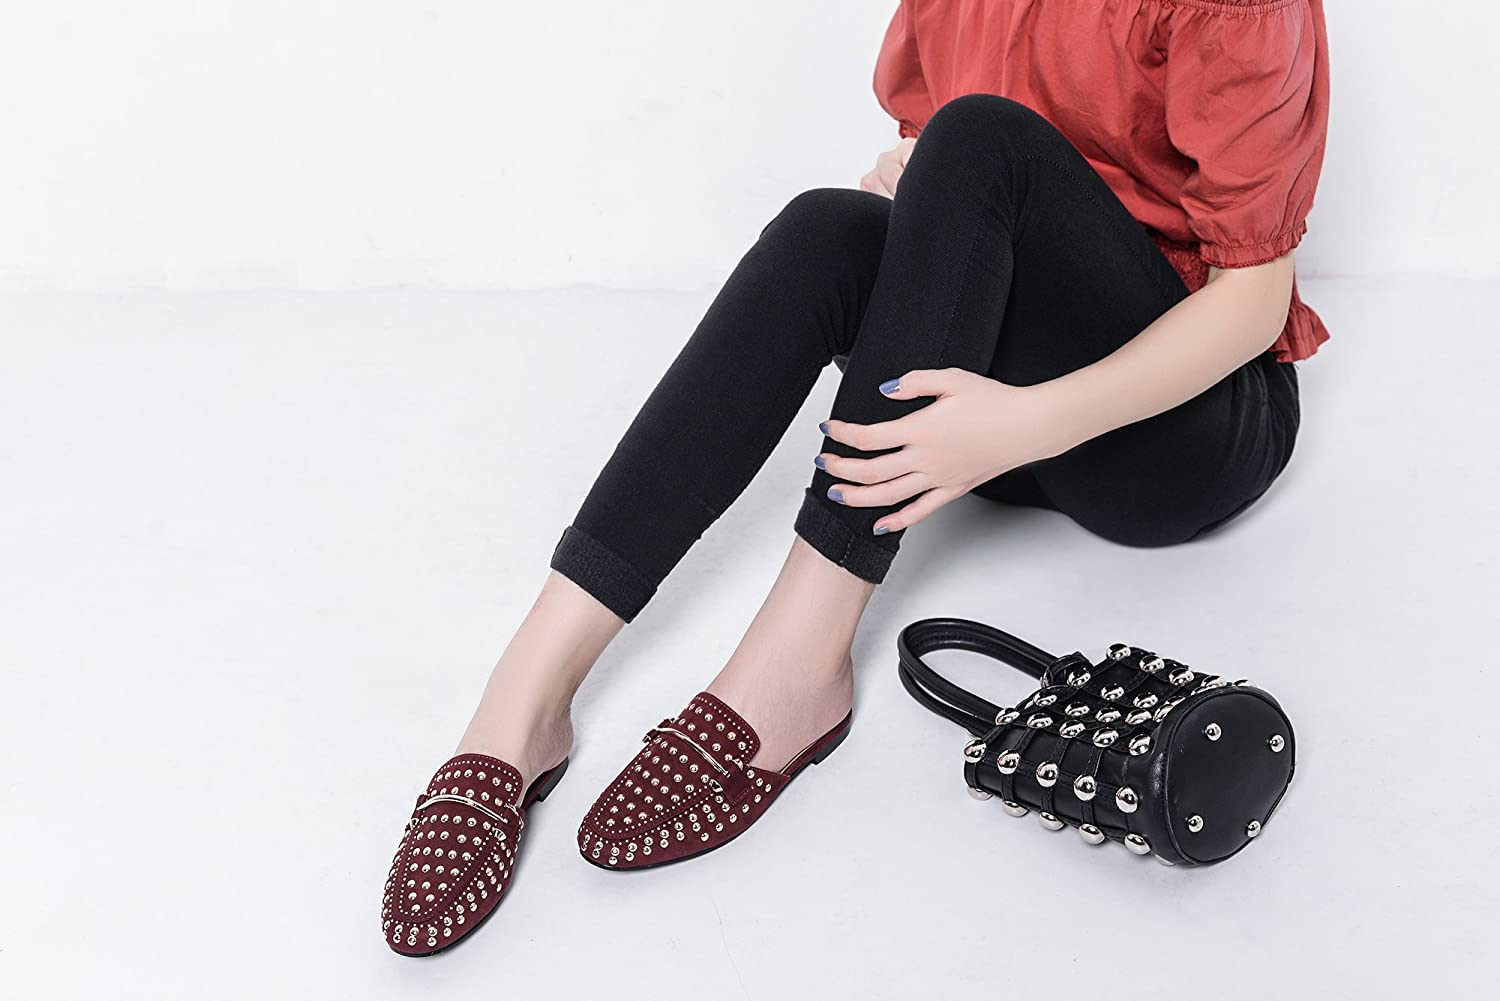 Mila Lady Rachel Womens Mules Slip On Loafer Spikes Stud Slides Flats Shoes